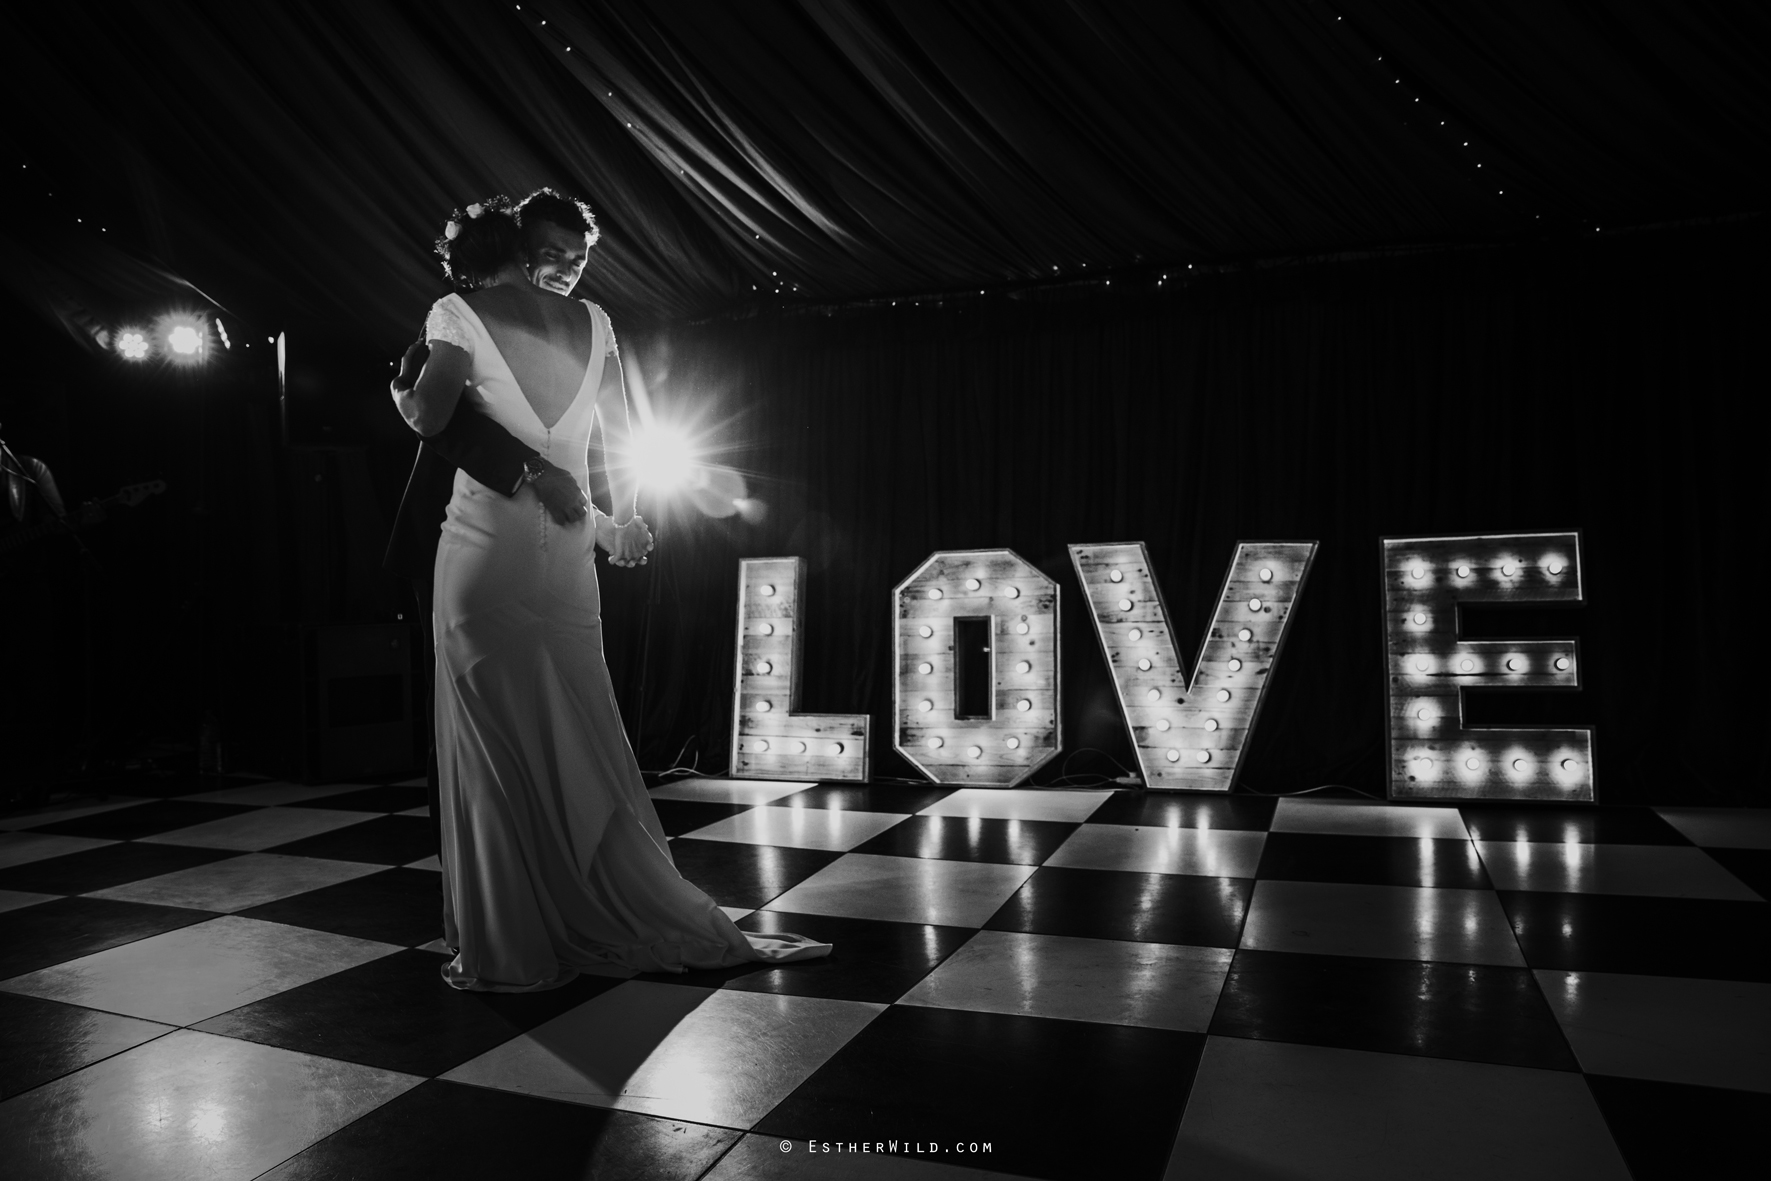 Wootton_Wedding_Copyright_Esther_Wild_Photographer_IMG_3179-2.jpg